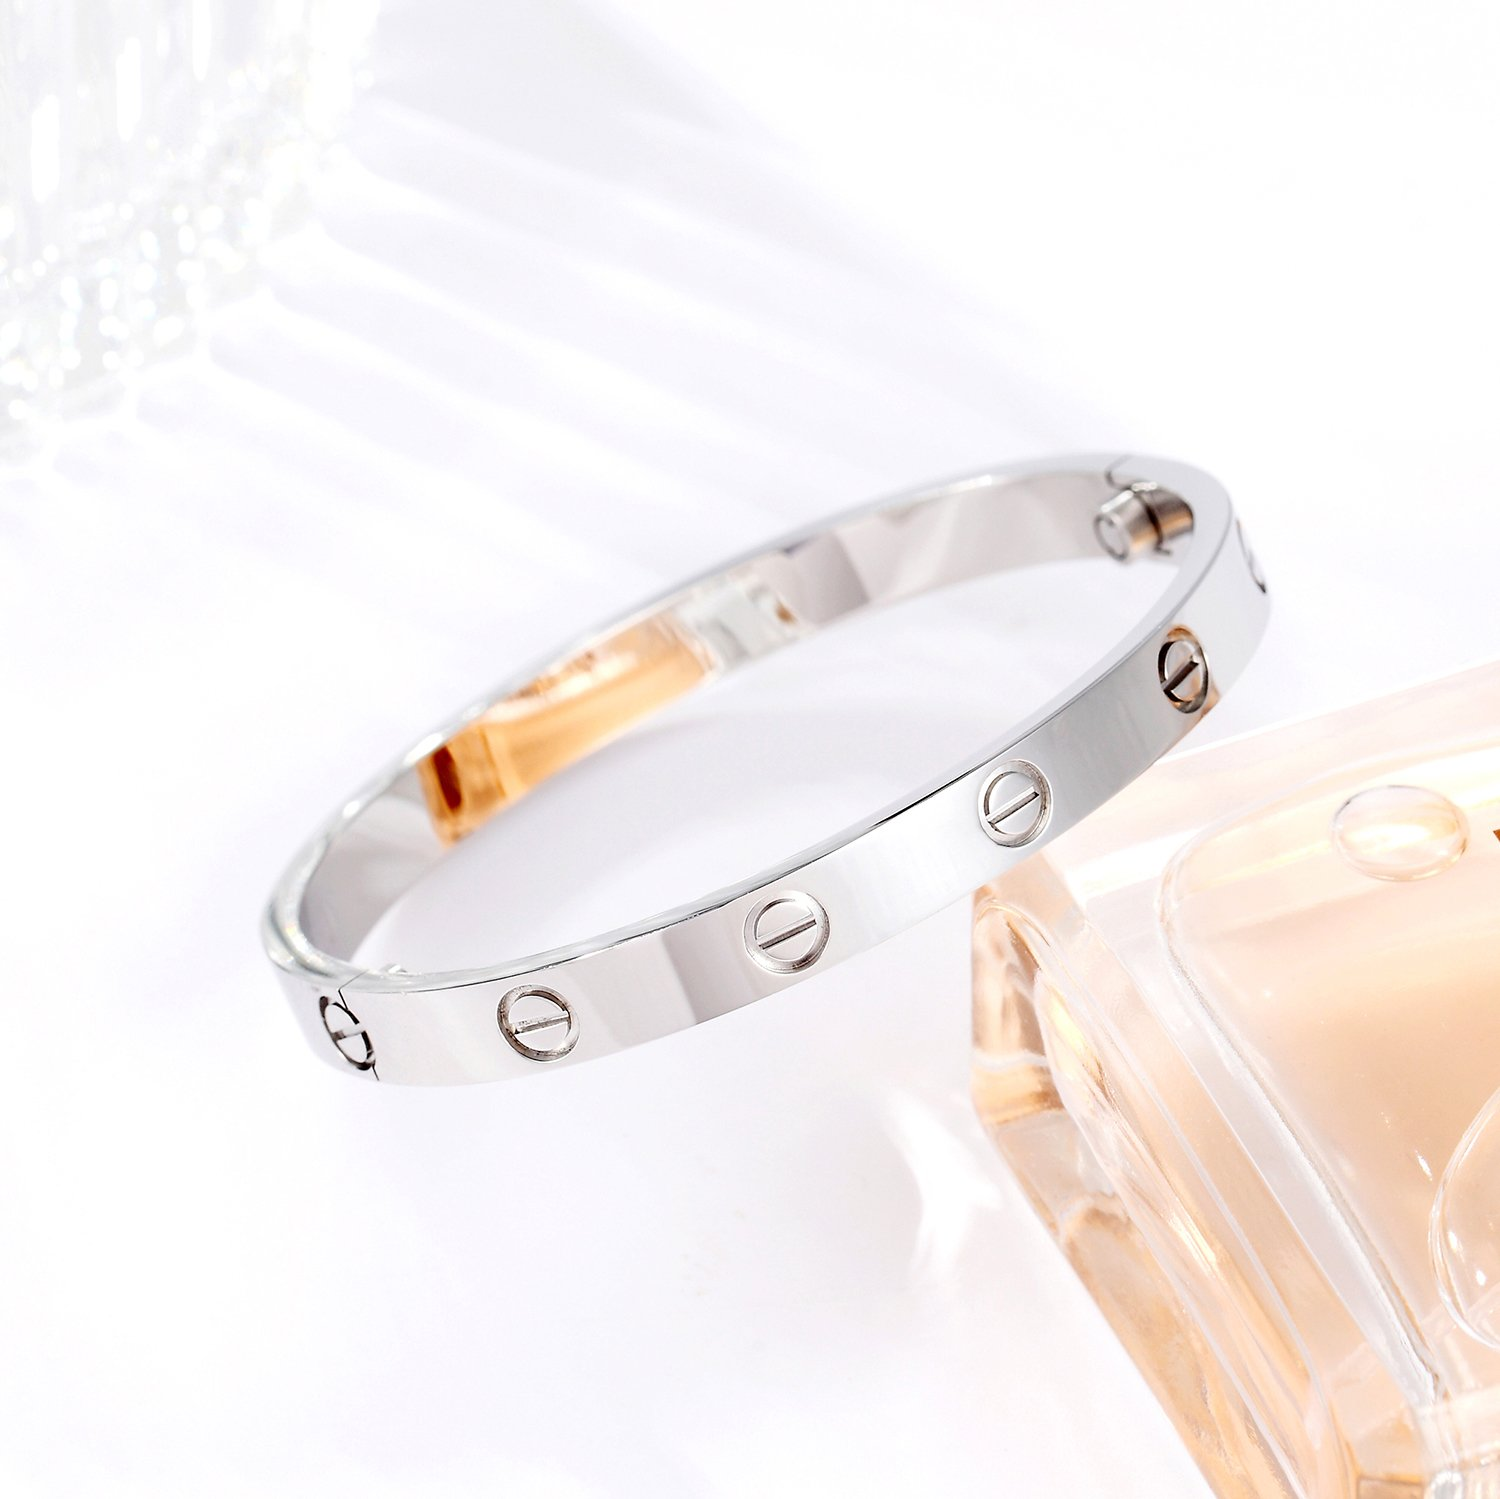 Z.RACLE Love Bangle Bracelet Stainless Steel with Screw - Best Gift for Love - 6.3IN White Gold by Z.RACLE (Image #3)